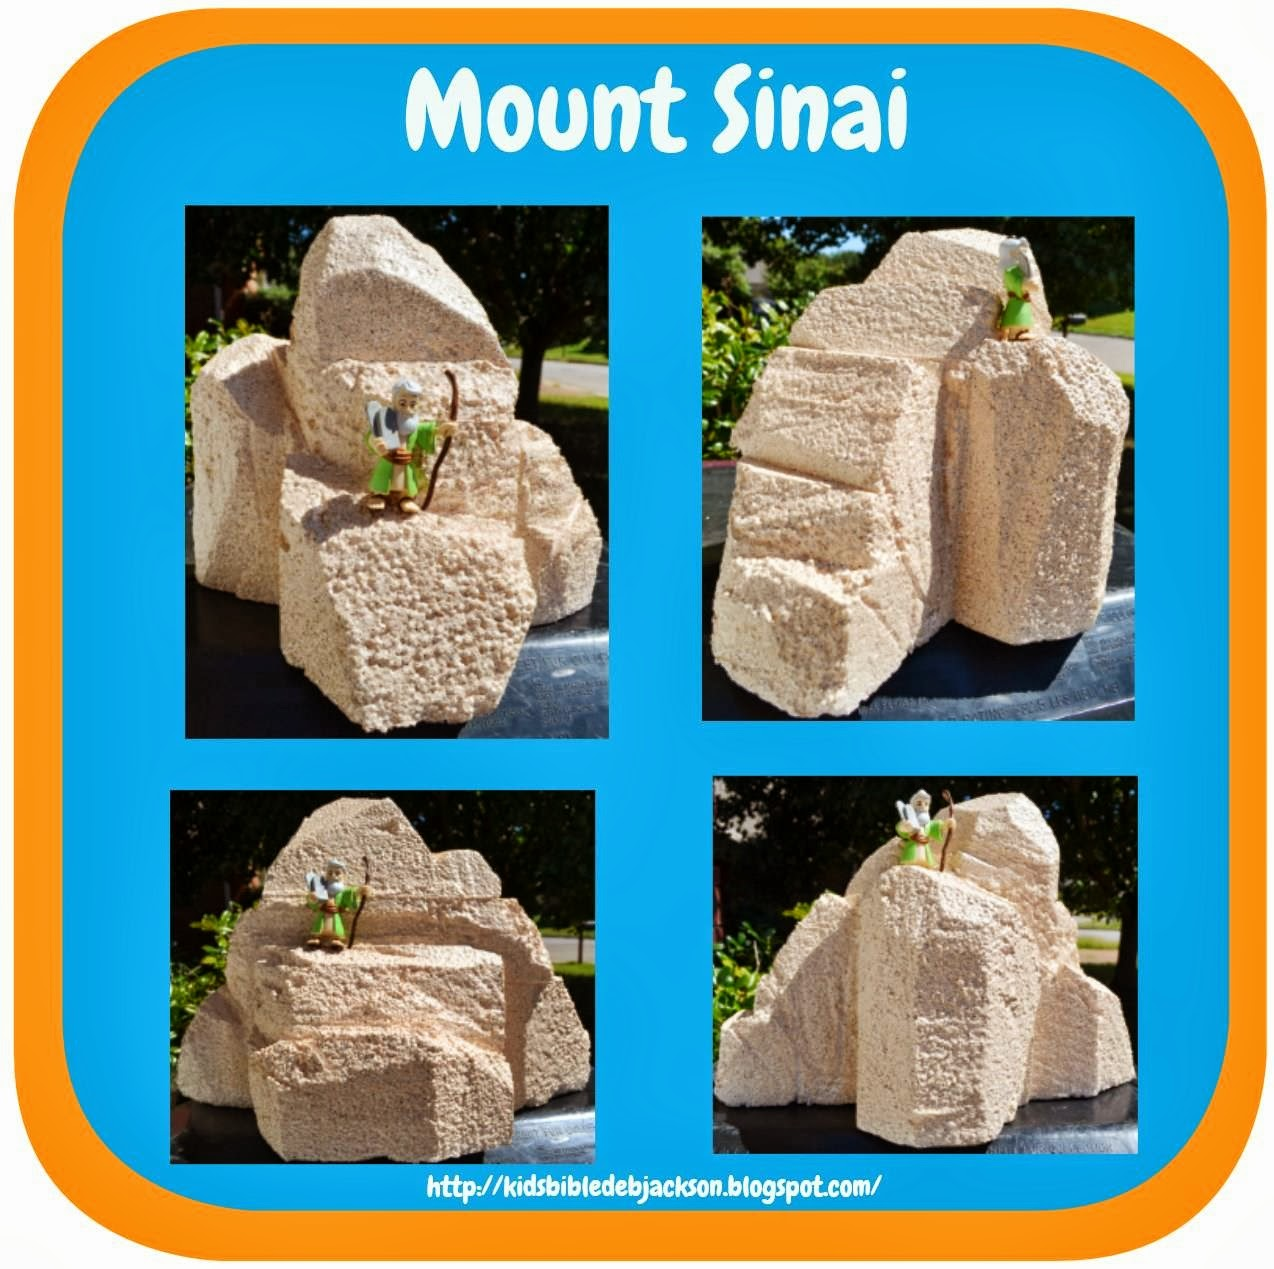 Make Your Own Mt. Sinai visual!